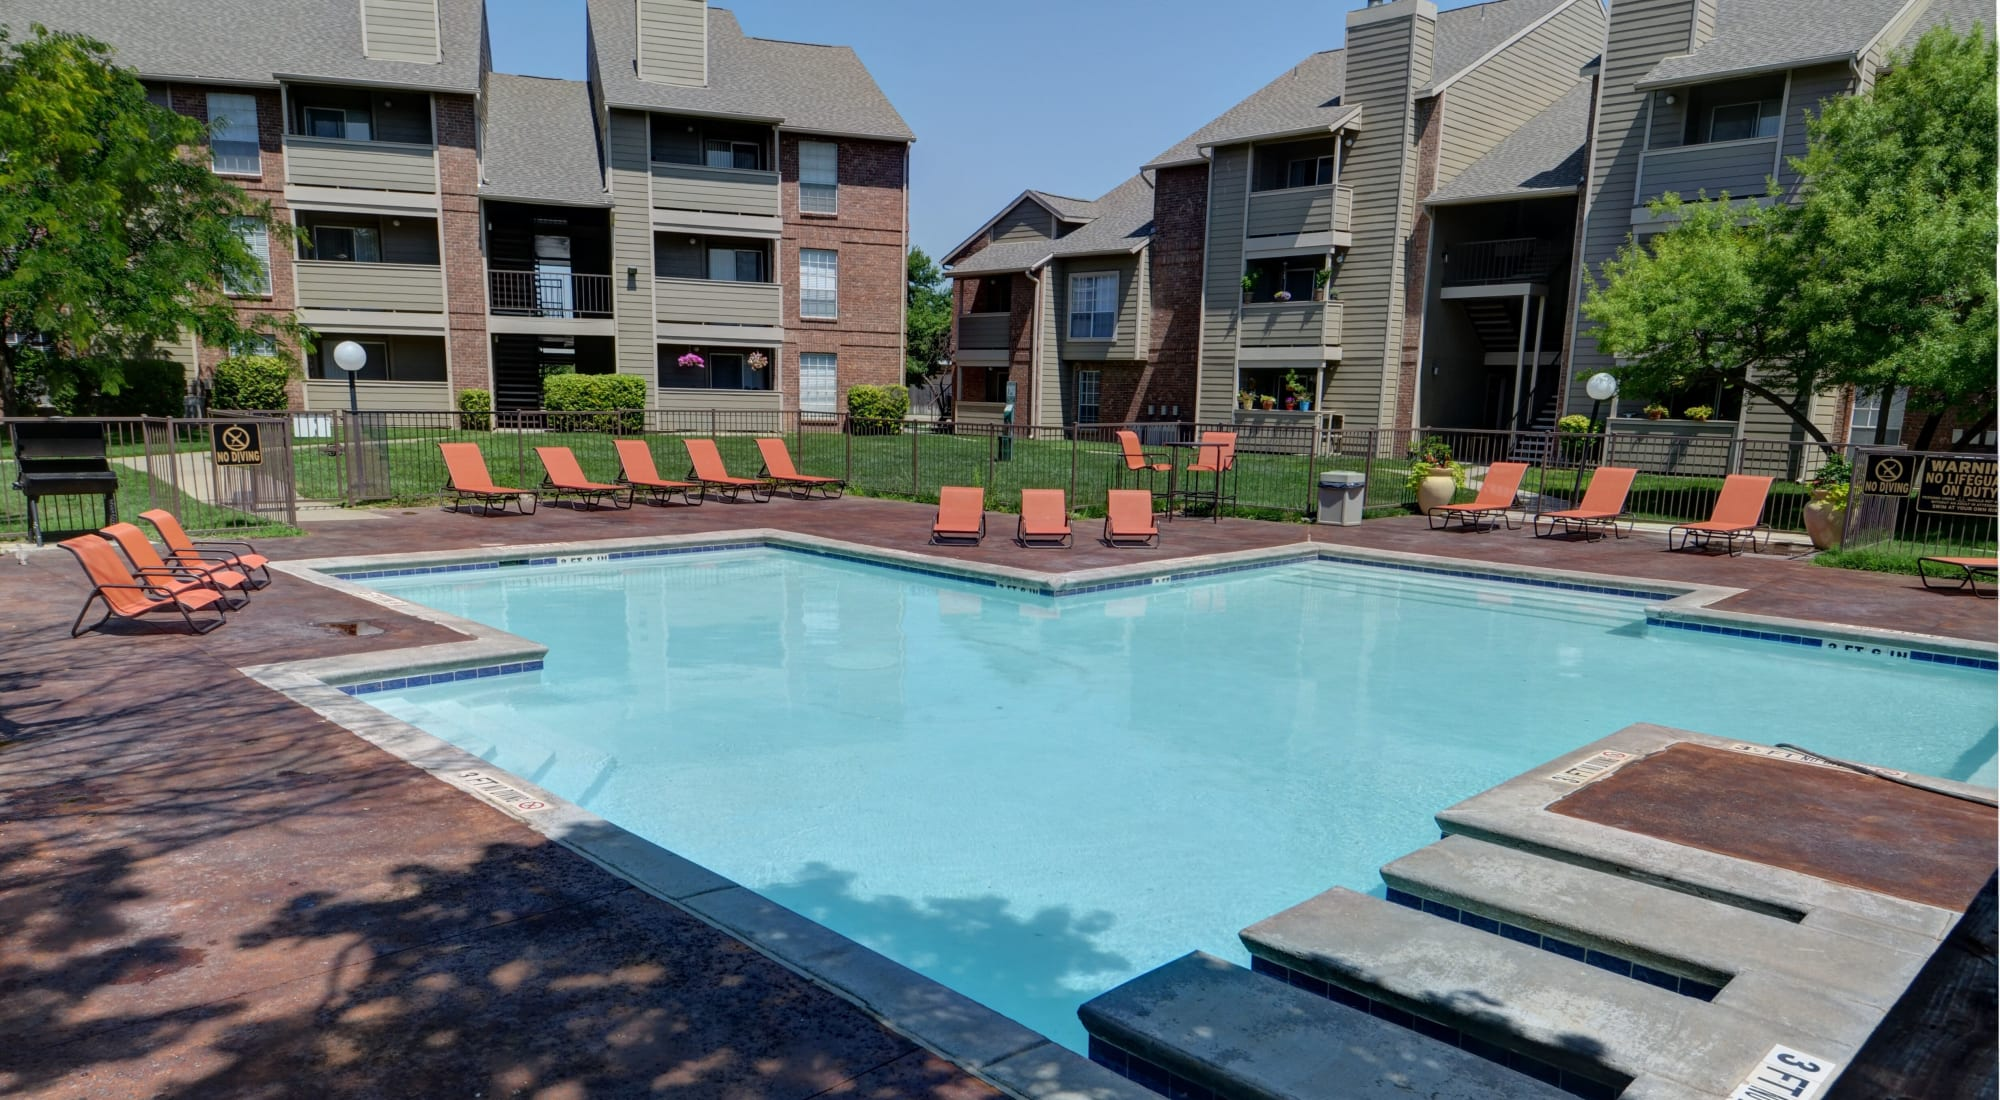 Newport Apartments in Amarillo, Texas